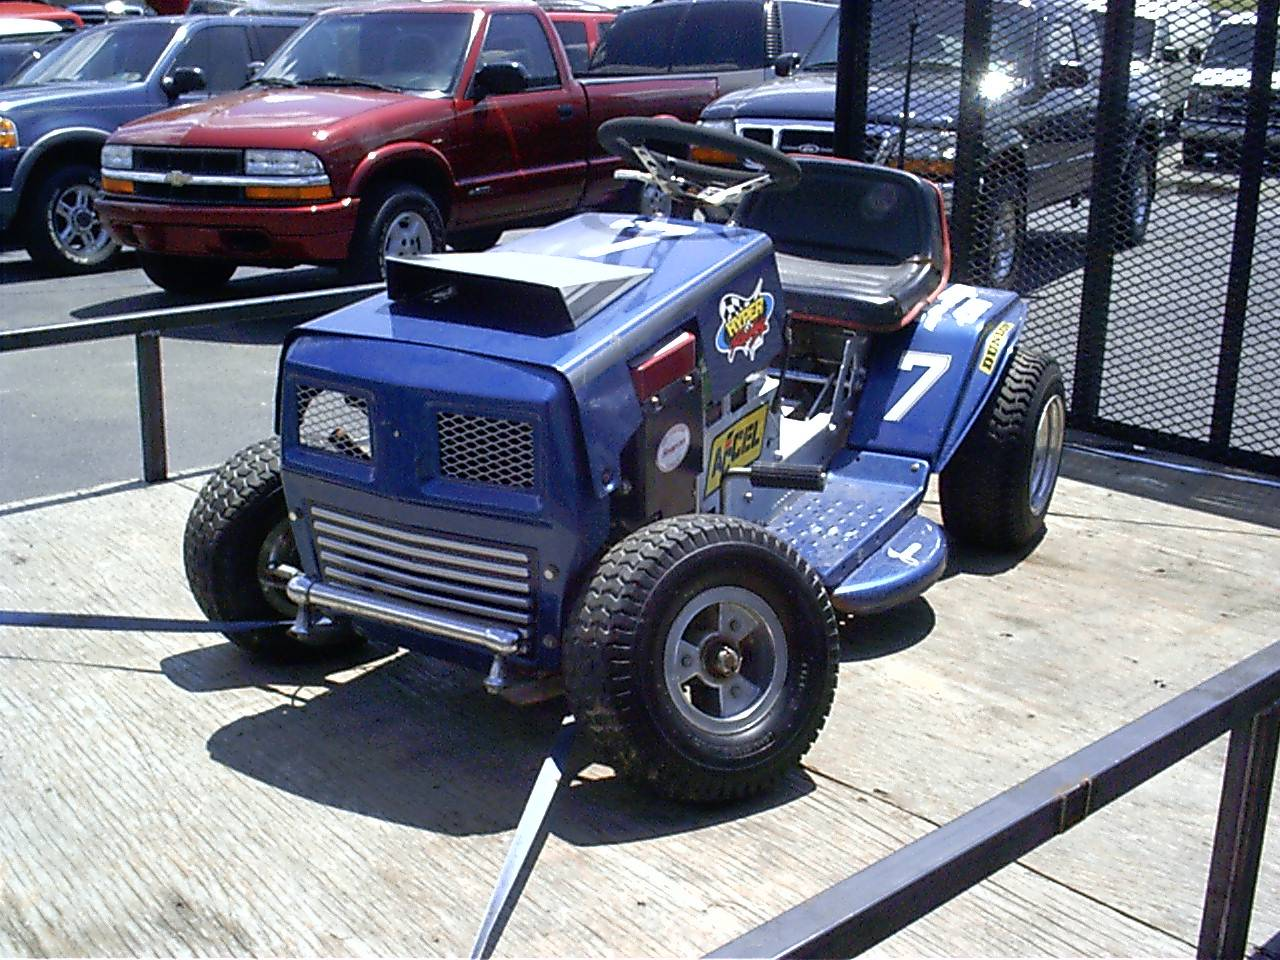 Click image for larger version  Name:Joshs%20Mower3.jpg Views:77 Size:217.1 KB ID:11804